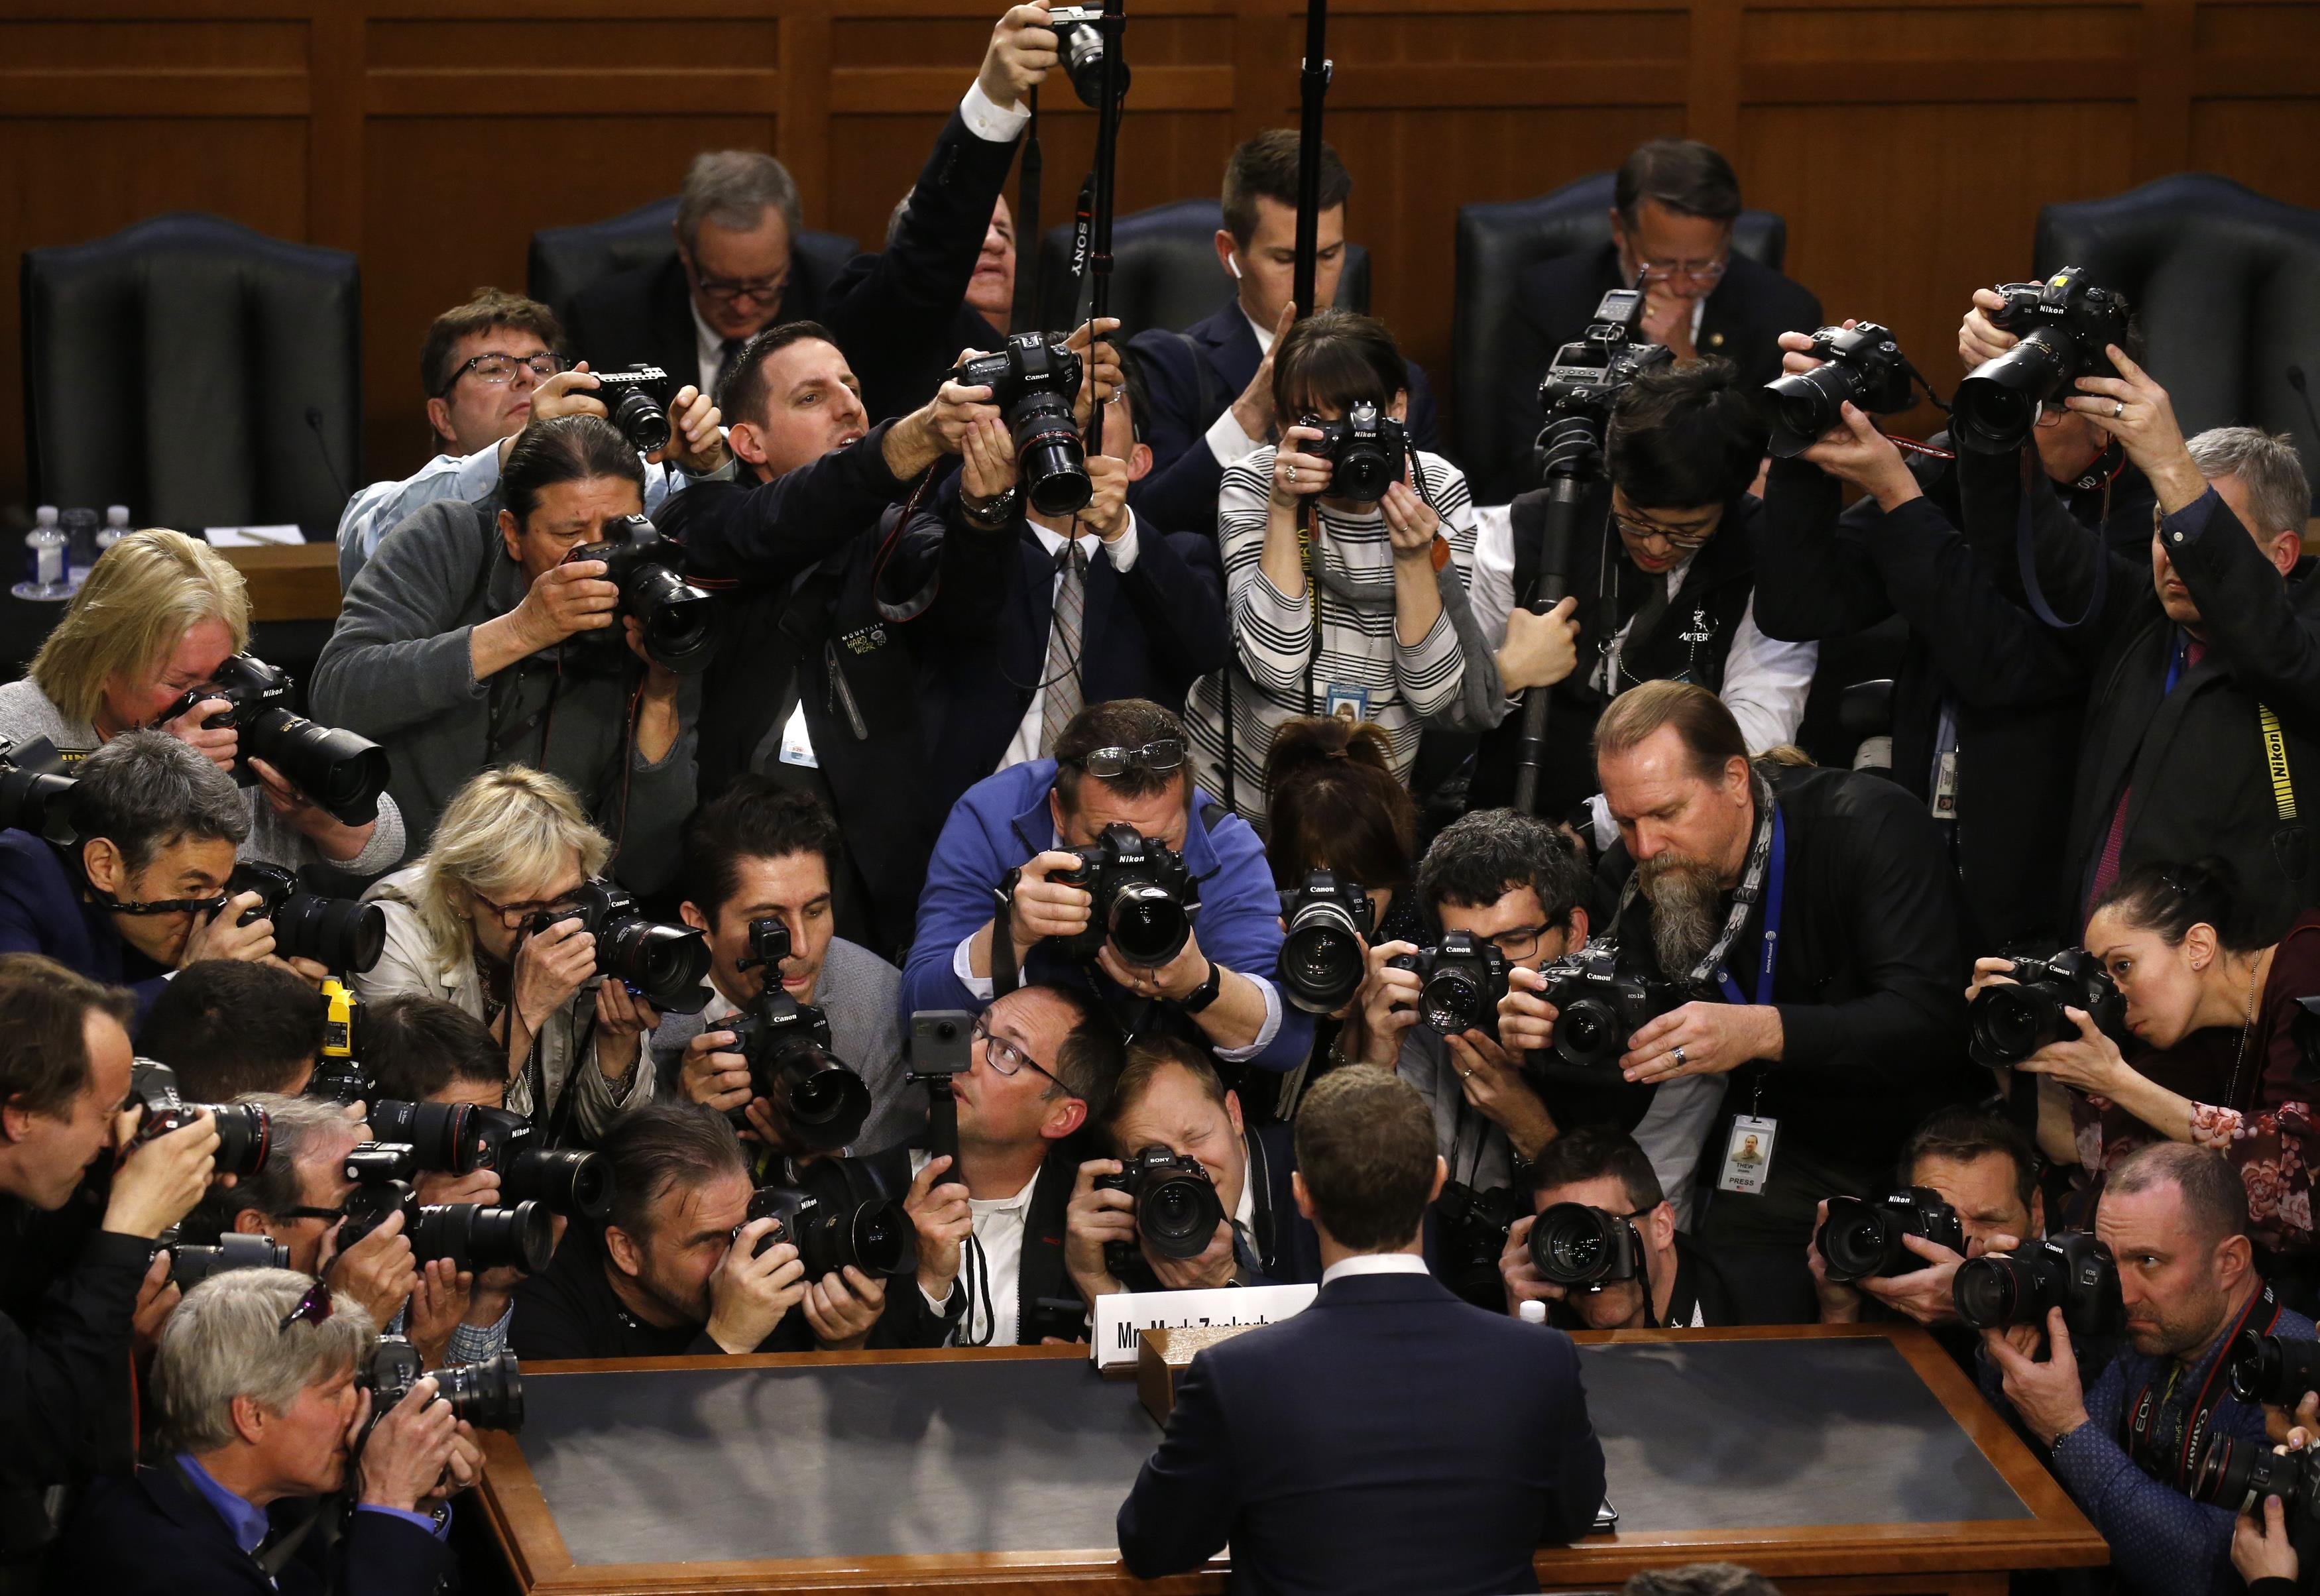 Facebook CEO Mark Zuckerberg is surrounded by members of the media as he arrives to testify before a Senate Judiciary and Commerce Committees joint hearing regarding the company's use and protection of user data, on Capitol Hill in Washington, US, April 10, 2018. Credit: Reuters/Leah Millis